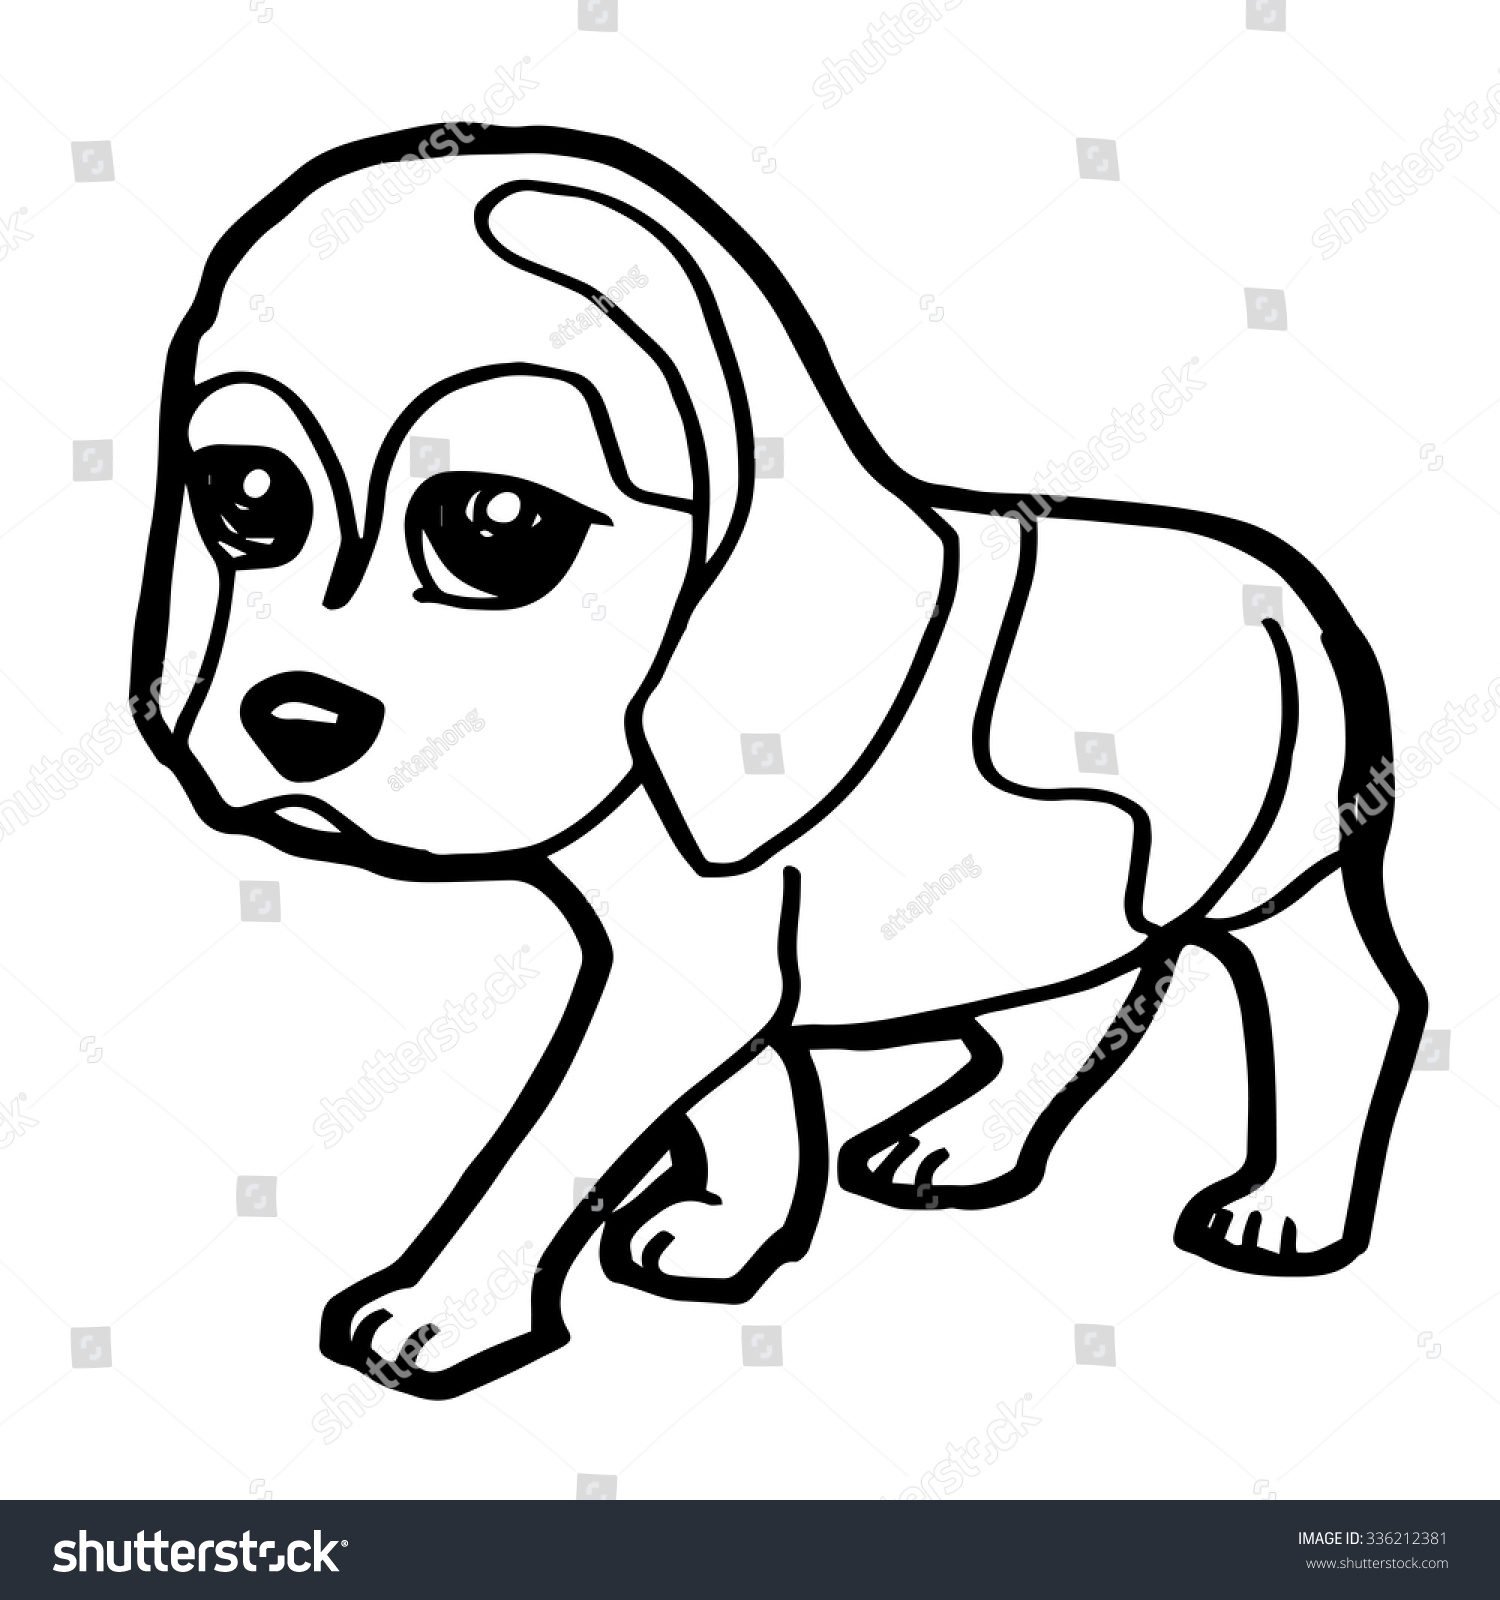 cute dog coloring page vector